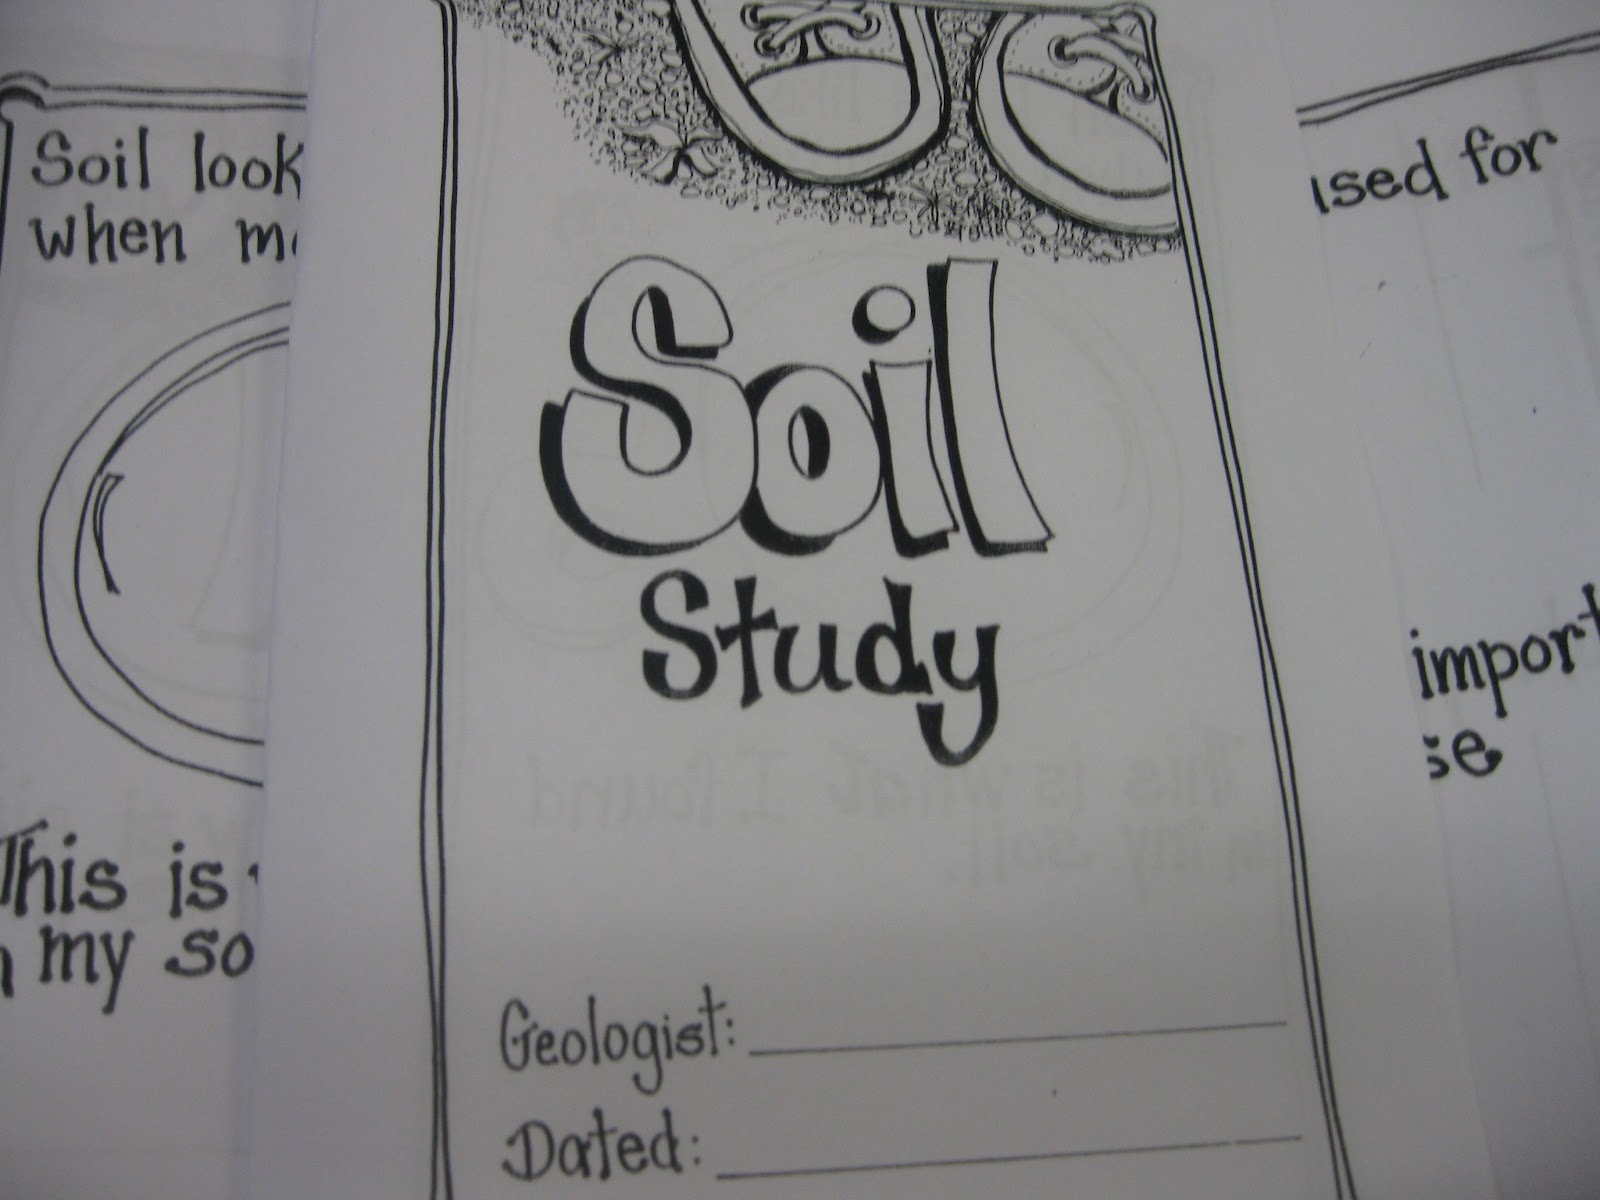 2nd grade science worksheets soil 2nd best free for Soil 4th grade science